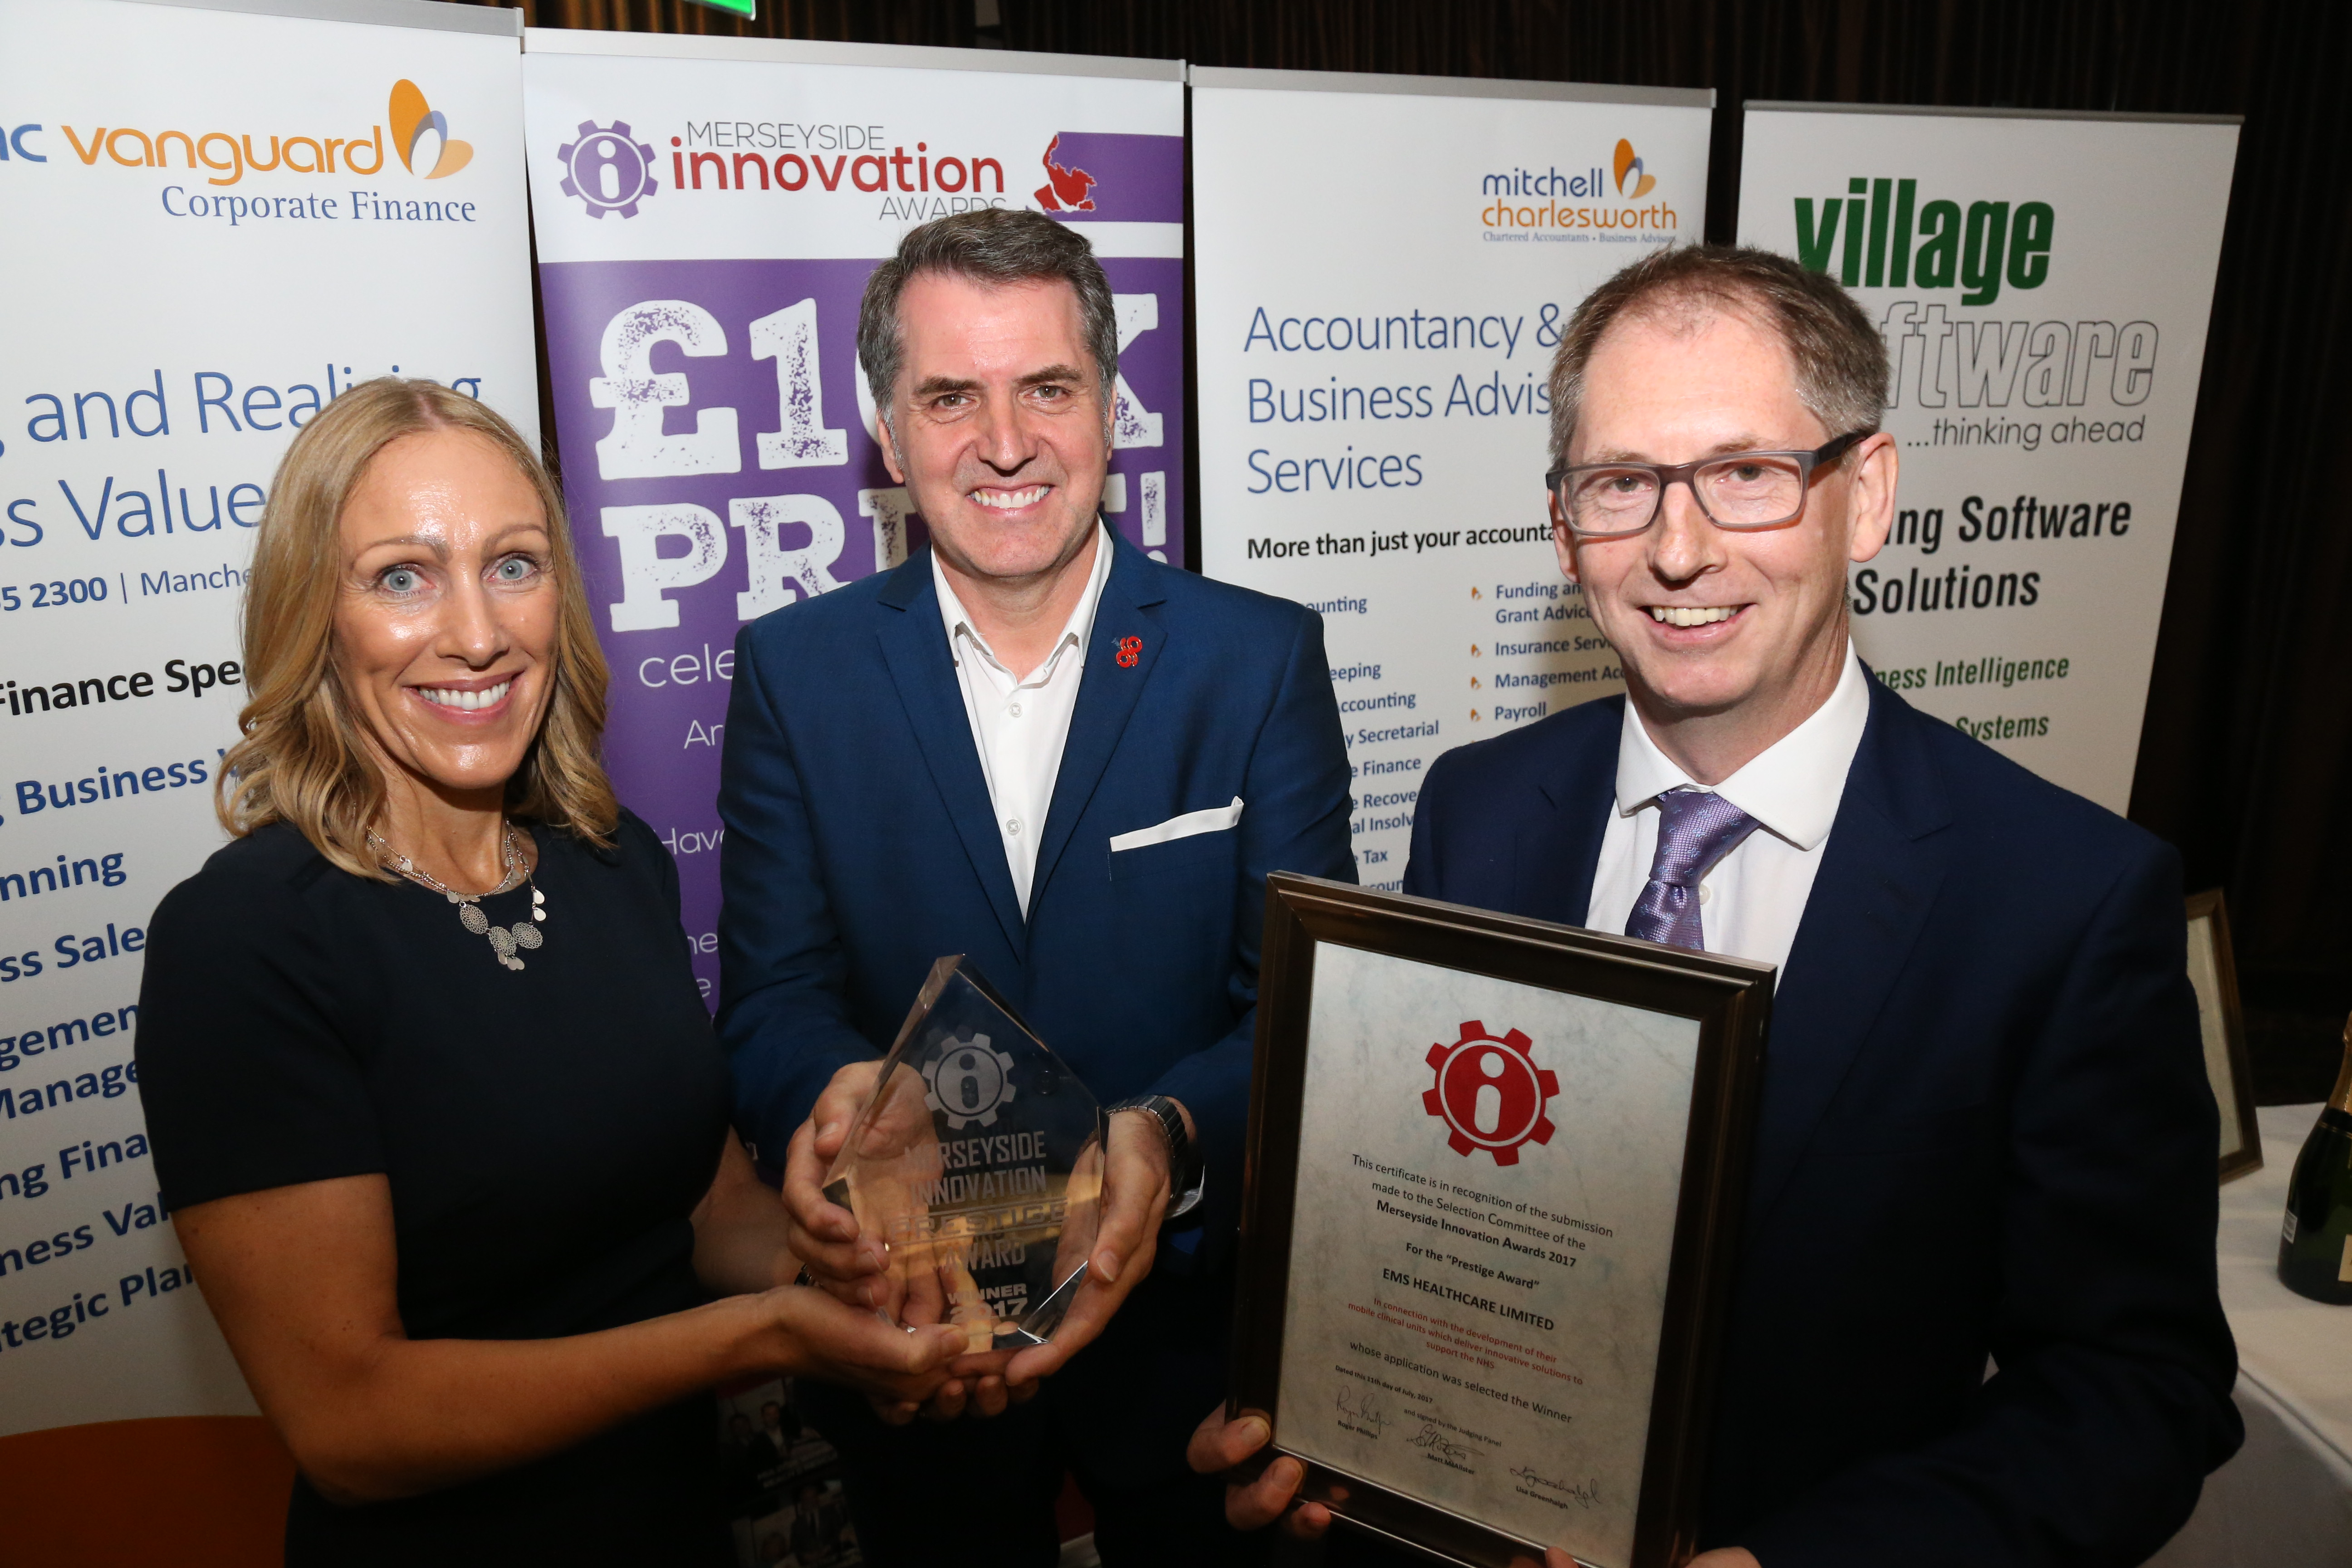 EMS Healthcare at the Innovation Awards